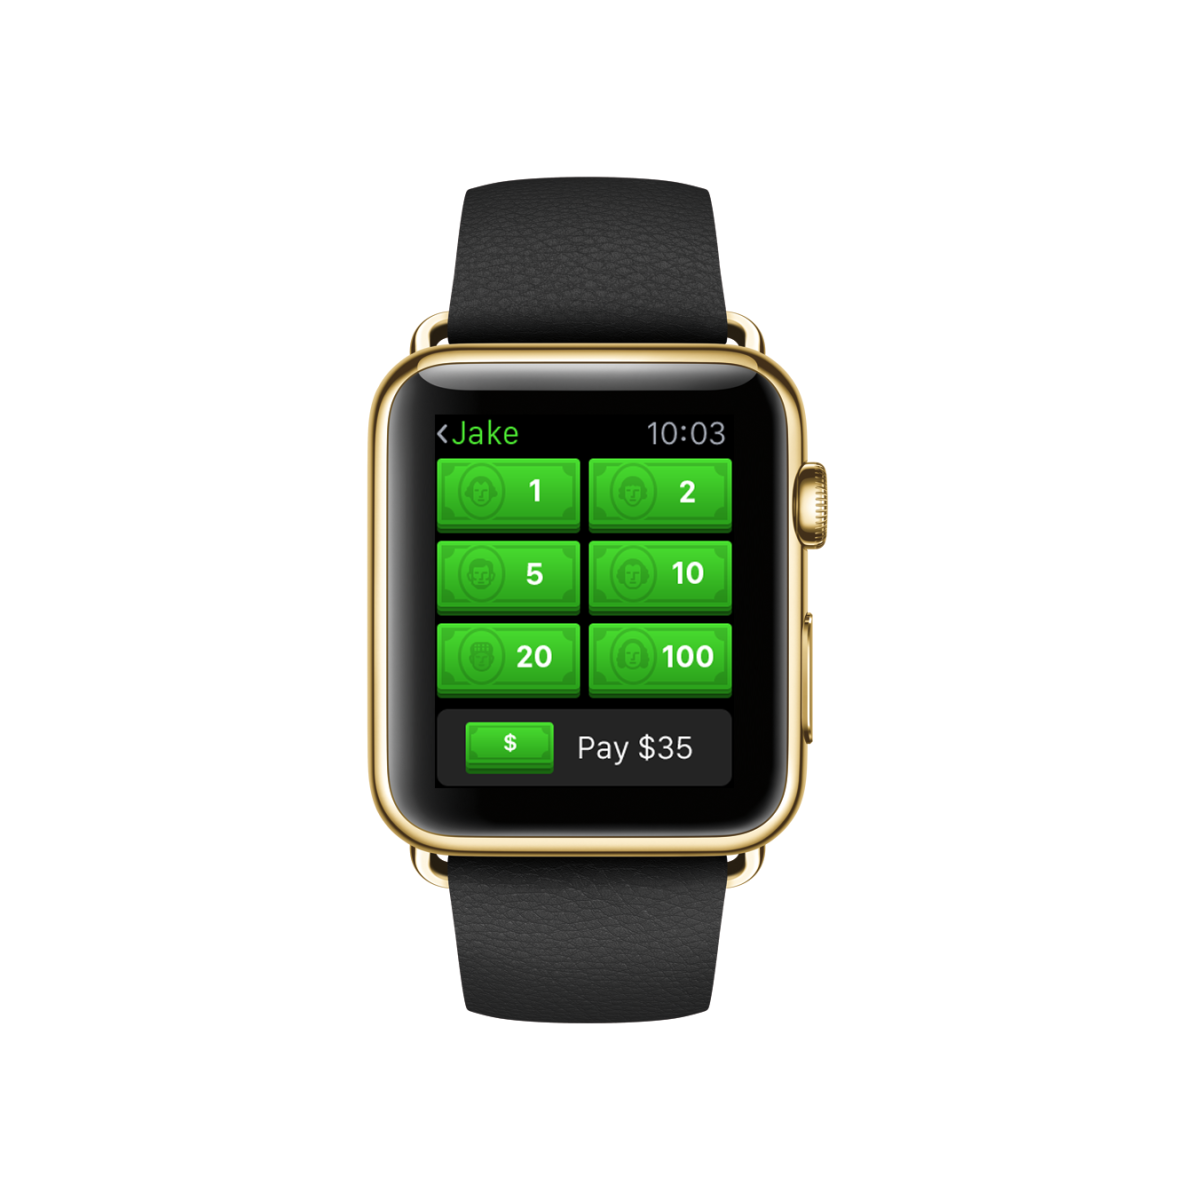 Square Cash for the Apple Watch lets you send money from your wrist